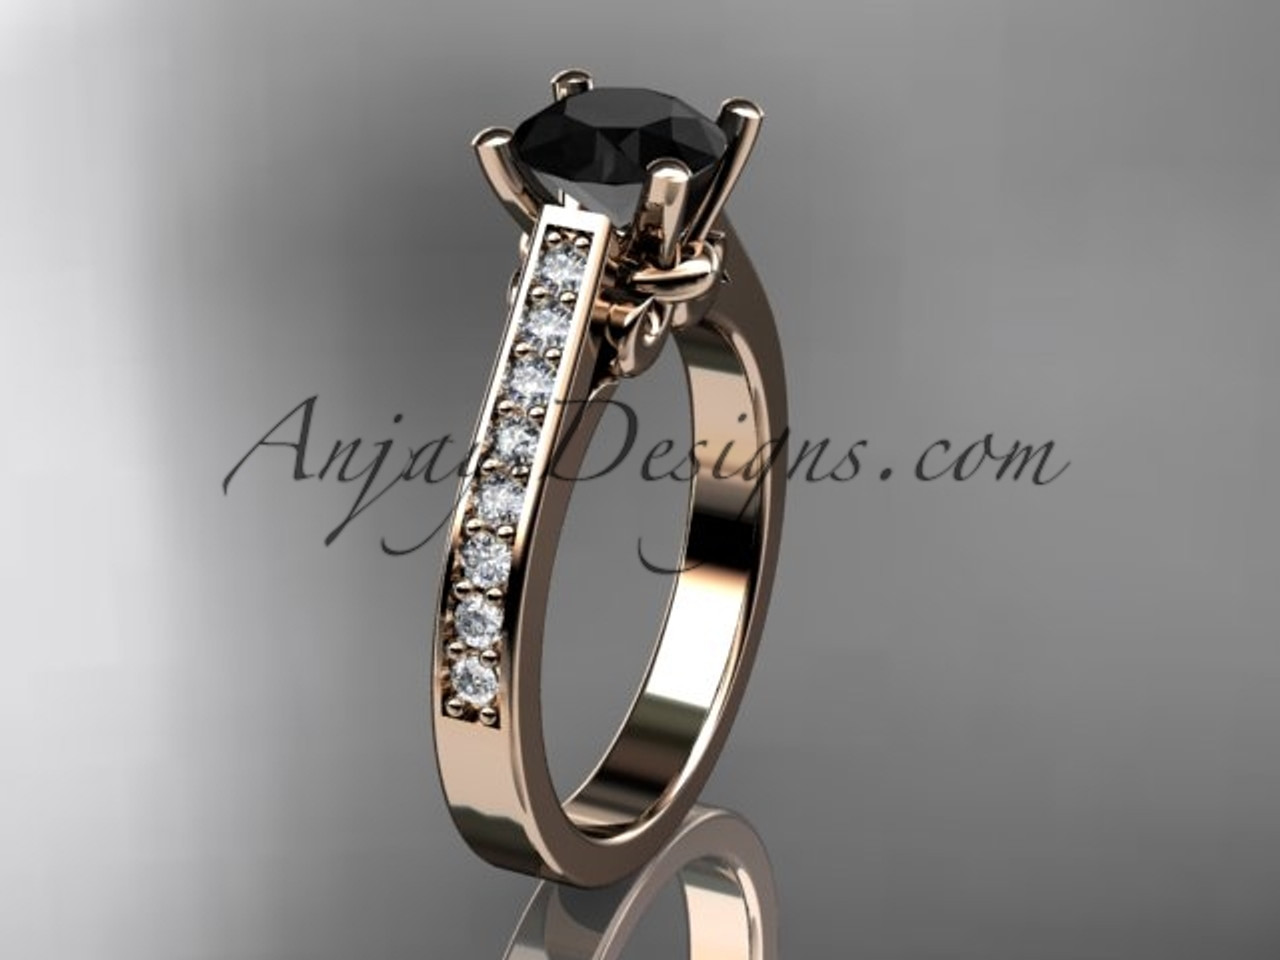 14kt rose gold diamond unique engagement ring, wedding ring with a Black  Diamond center stone